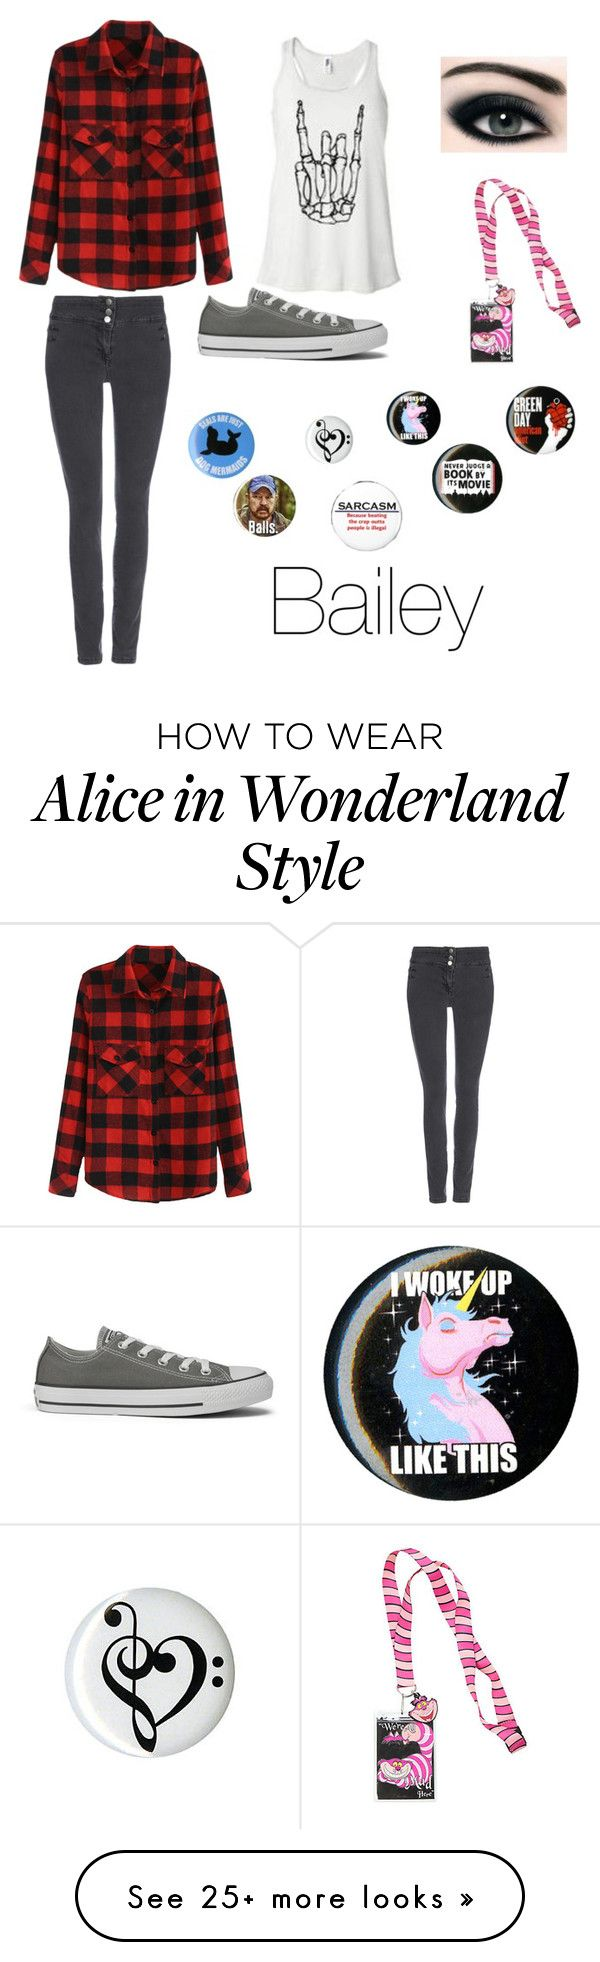 """Bailey"" by thebunnywarrior on Polyvore featuring Wallis, Converse and Disney"